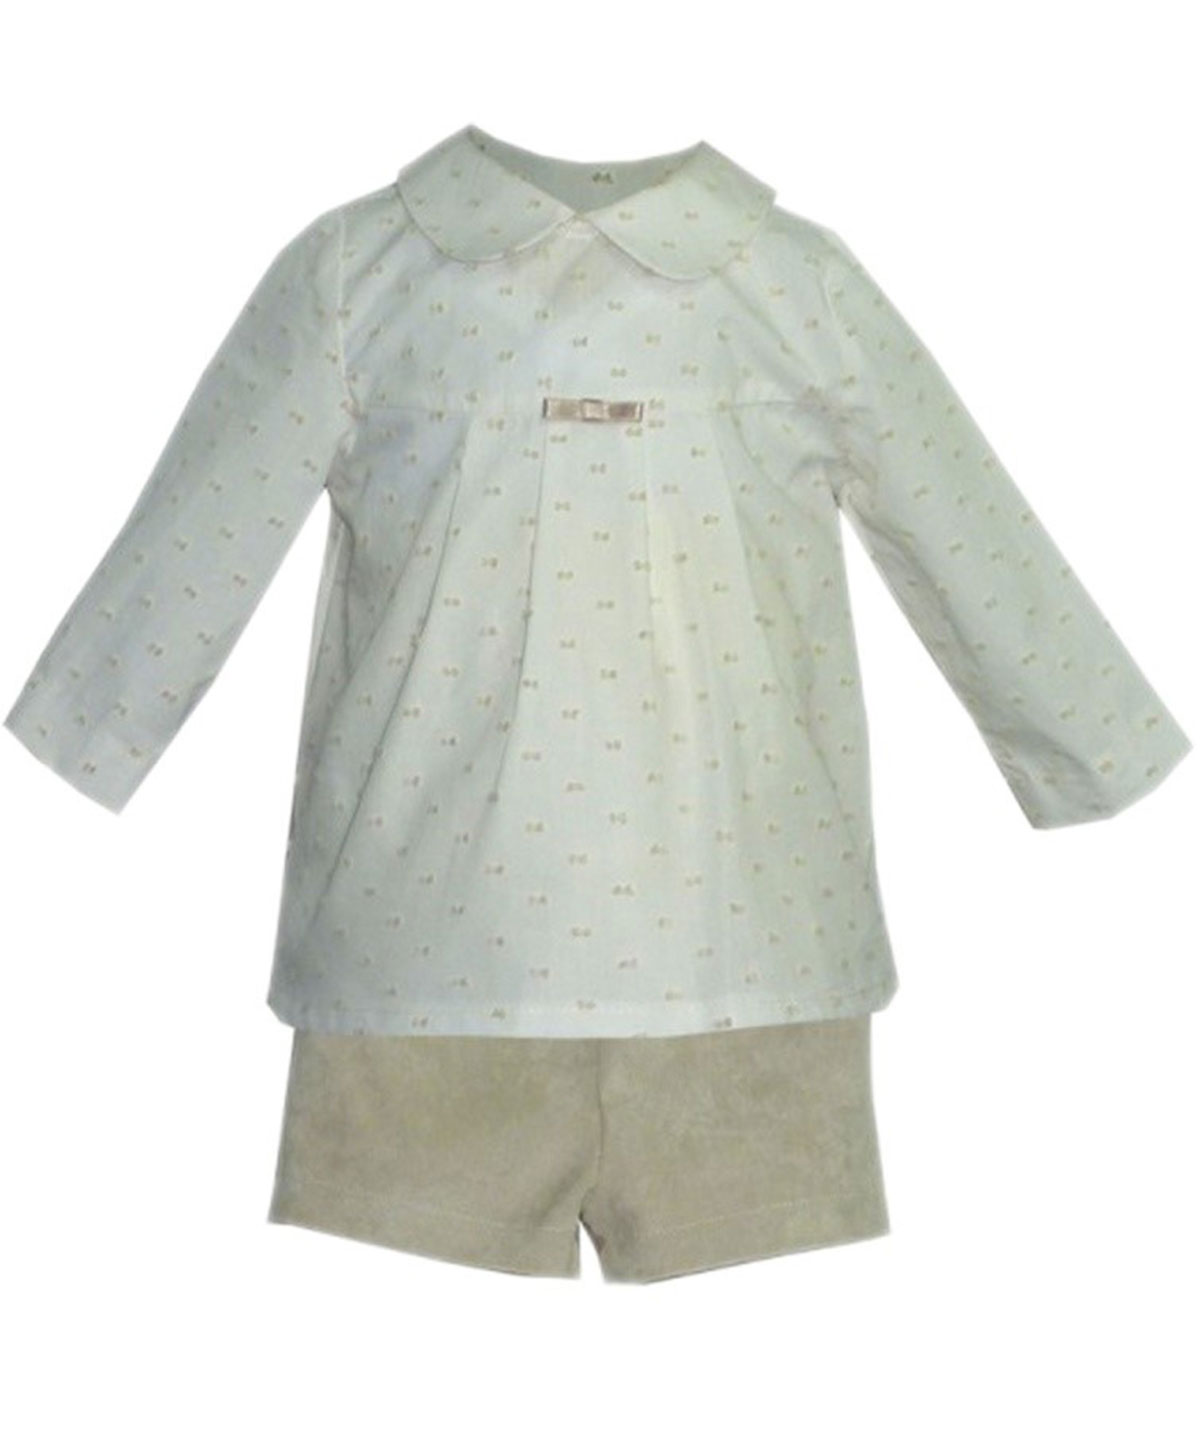 baby boy shirts and shorts